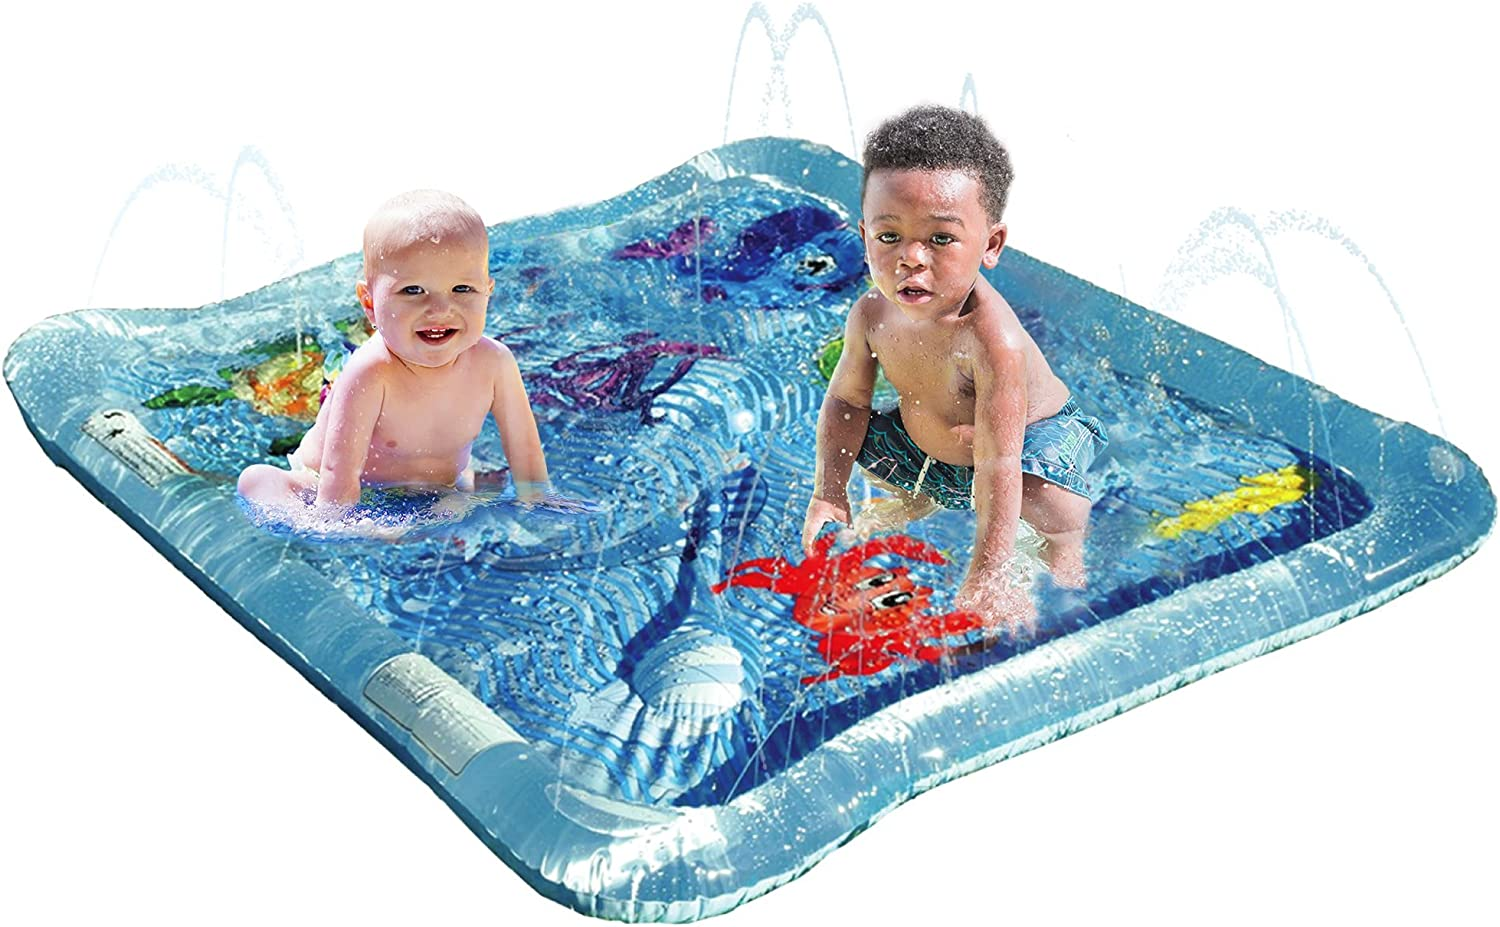 KLEEGER Baby Pool Splash Mat: Infant Water Play Mat Toy With Spraying Water. For Boys & Girls | Great for Beach, Deck & Backyard